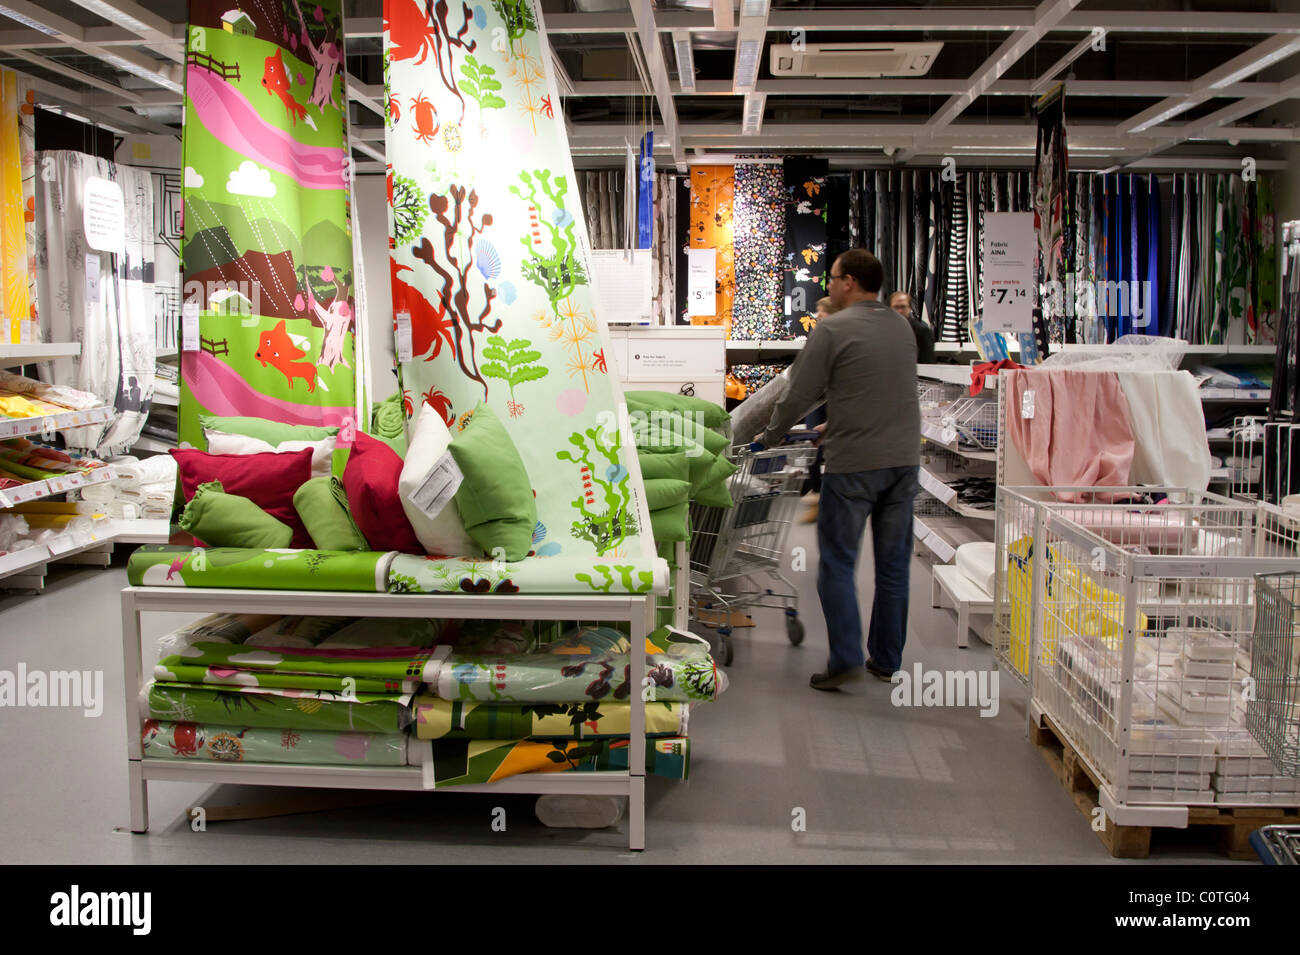 textilabteilung ikea einrichtungshaus wembley london stockfoto bild 34960132 alamy. Black Bedroom Furniture Sets. Home Design Ideas